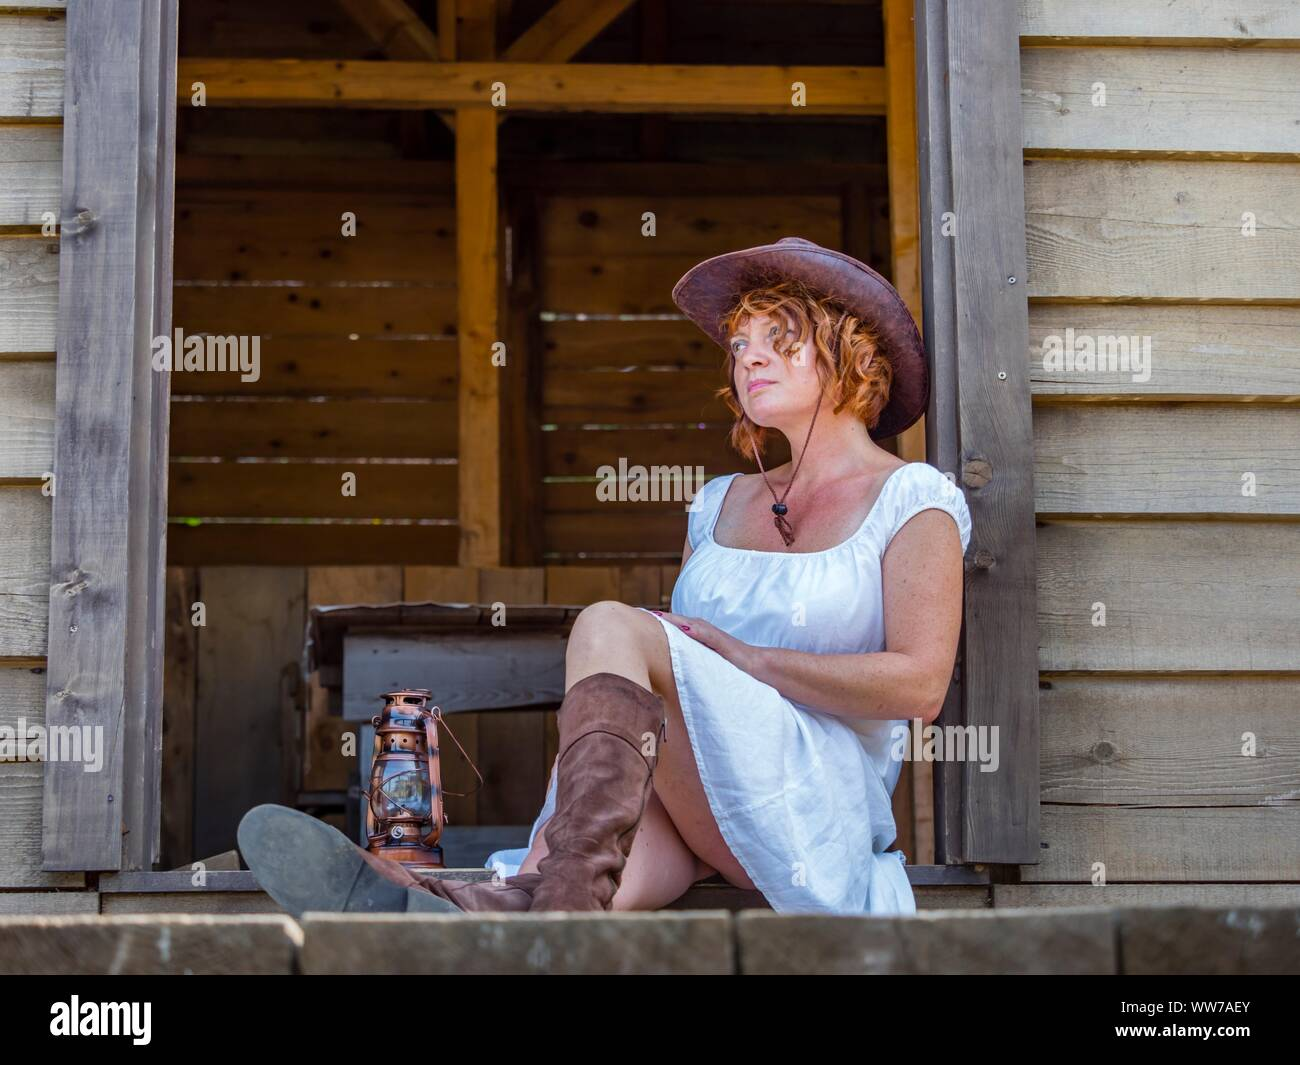 Western style 40s forties woman Stock Photo